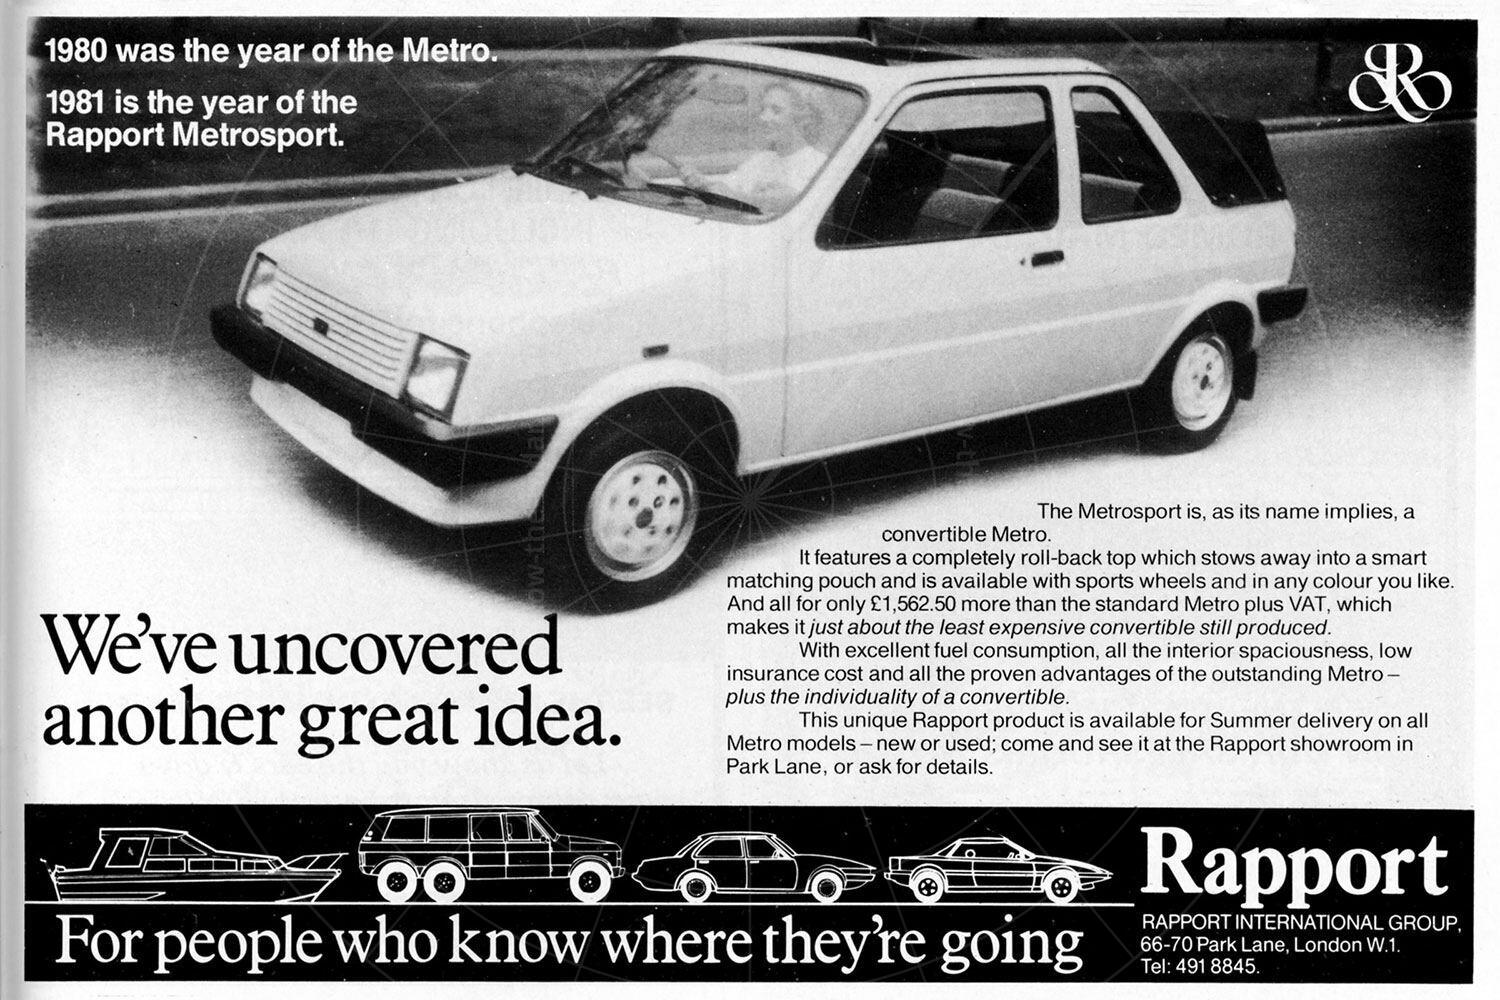 Rapport Metrosport advert Pic: magiccarpics.co.uk | Rapport Metrosport advert